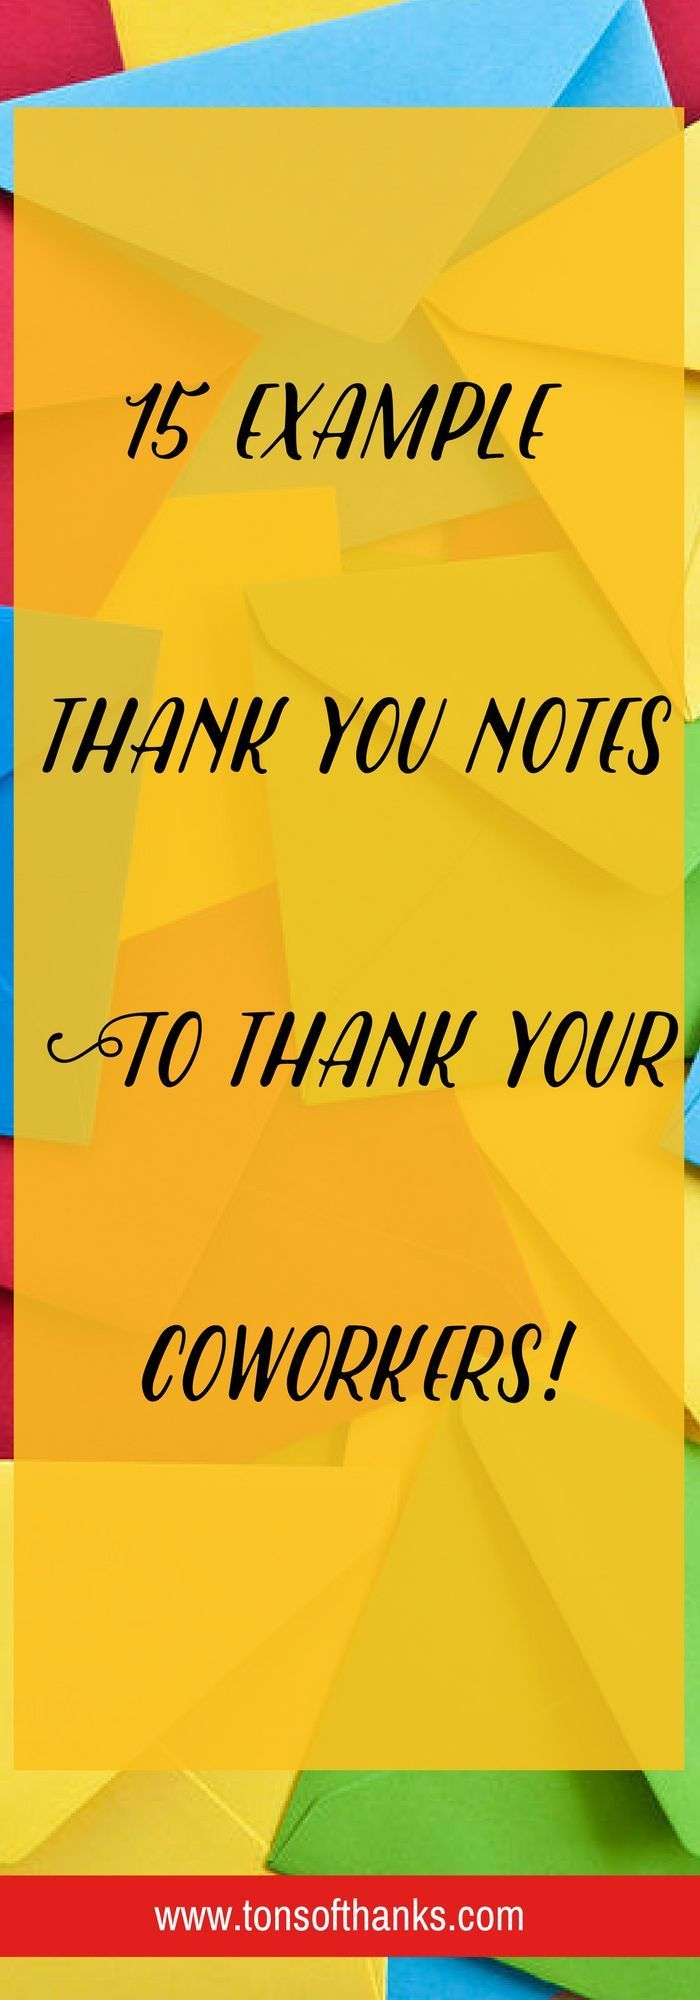 Thank You To Coworkers   Example Thank You Note Wording To